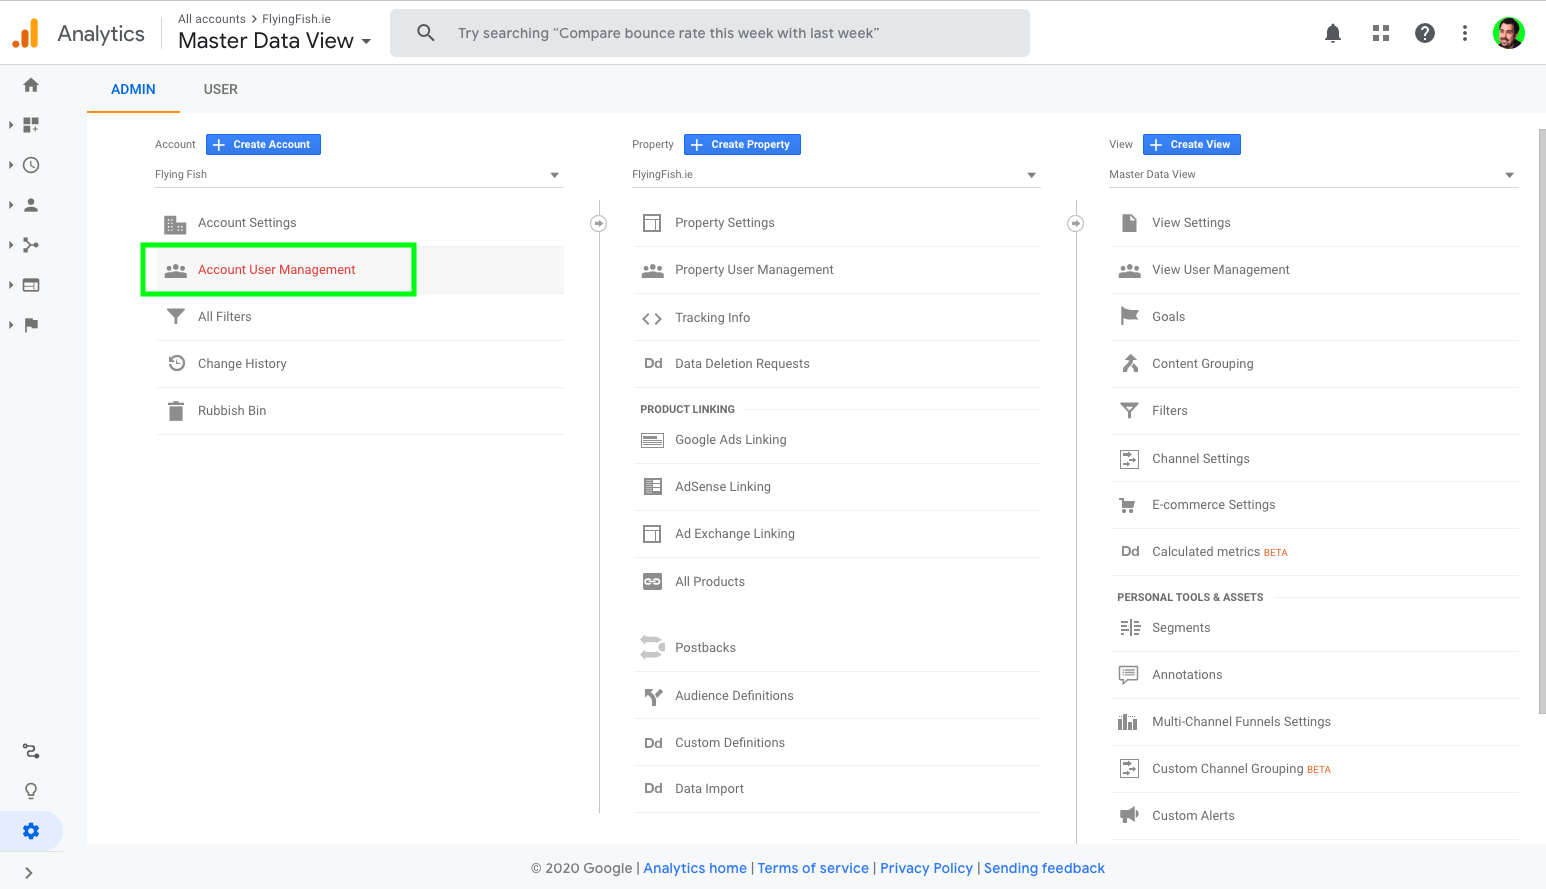 Google Analytics Open Account User Management screen